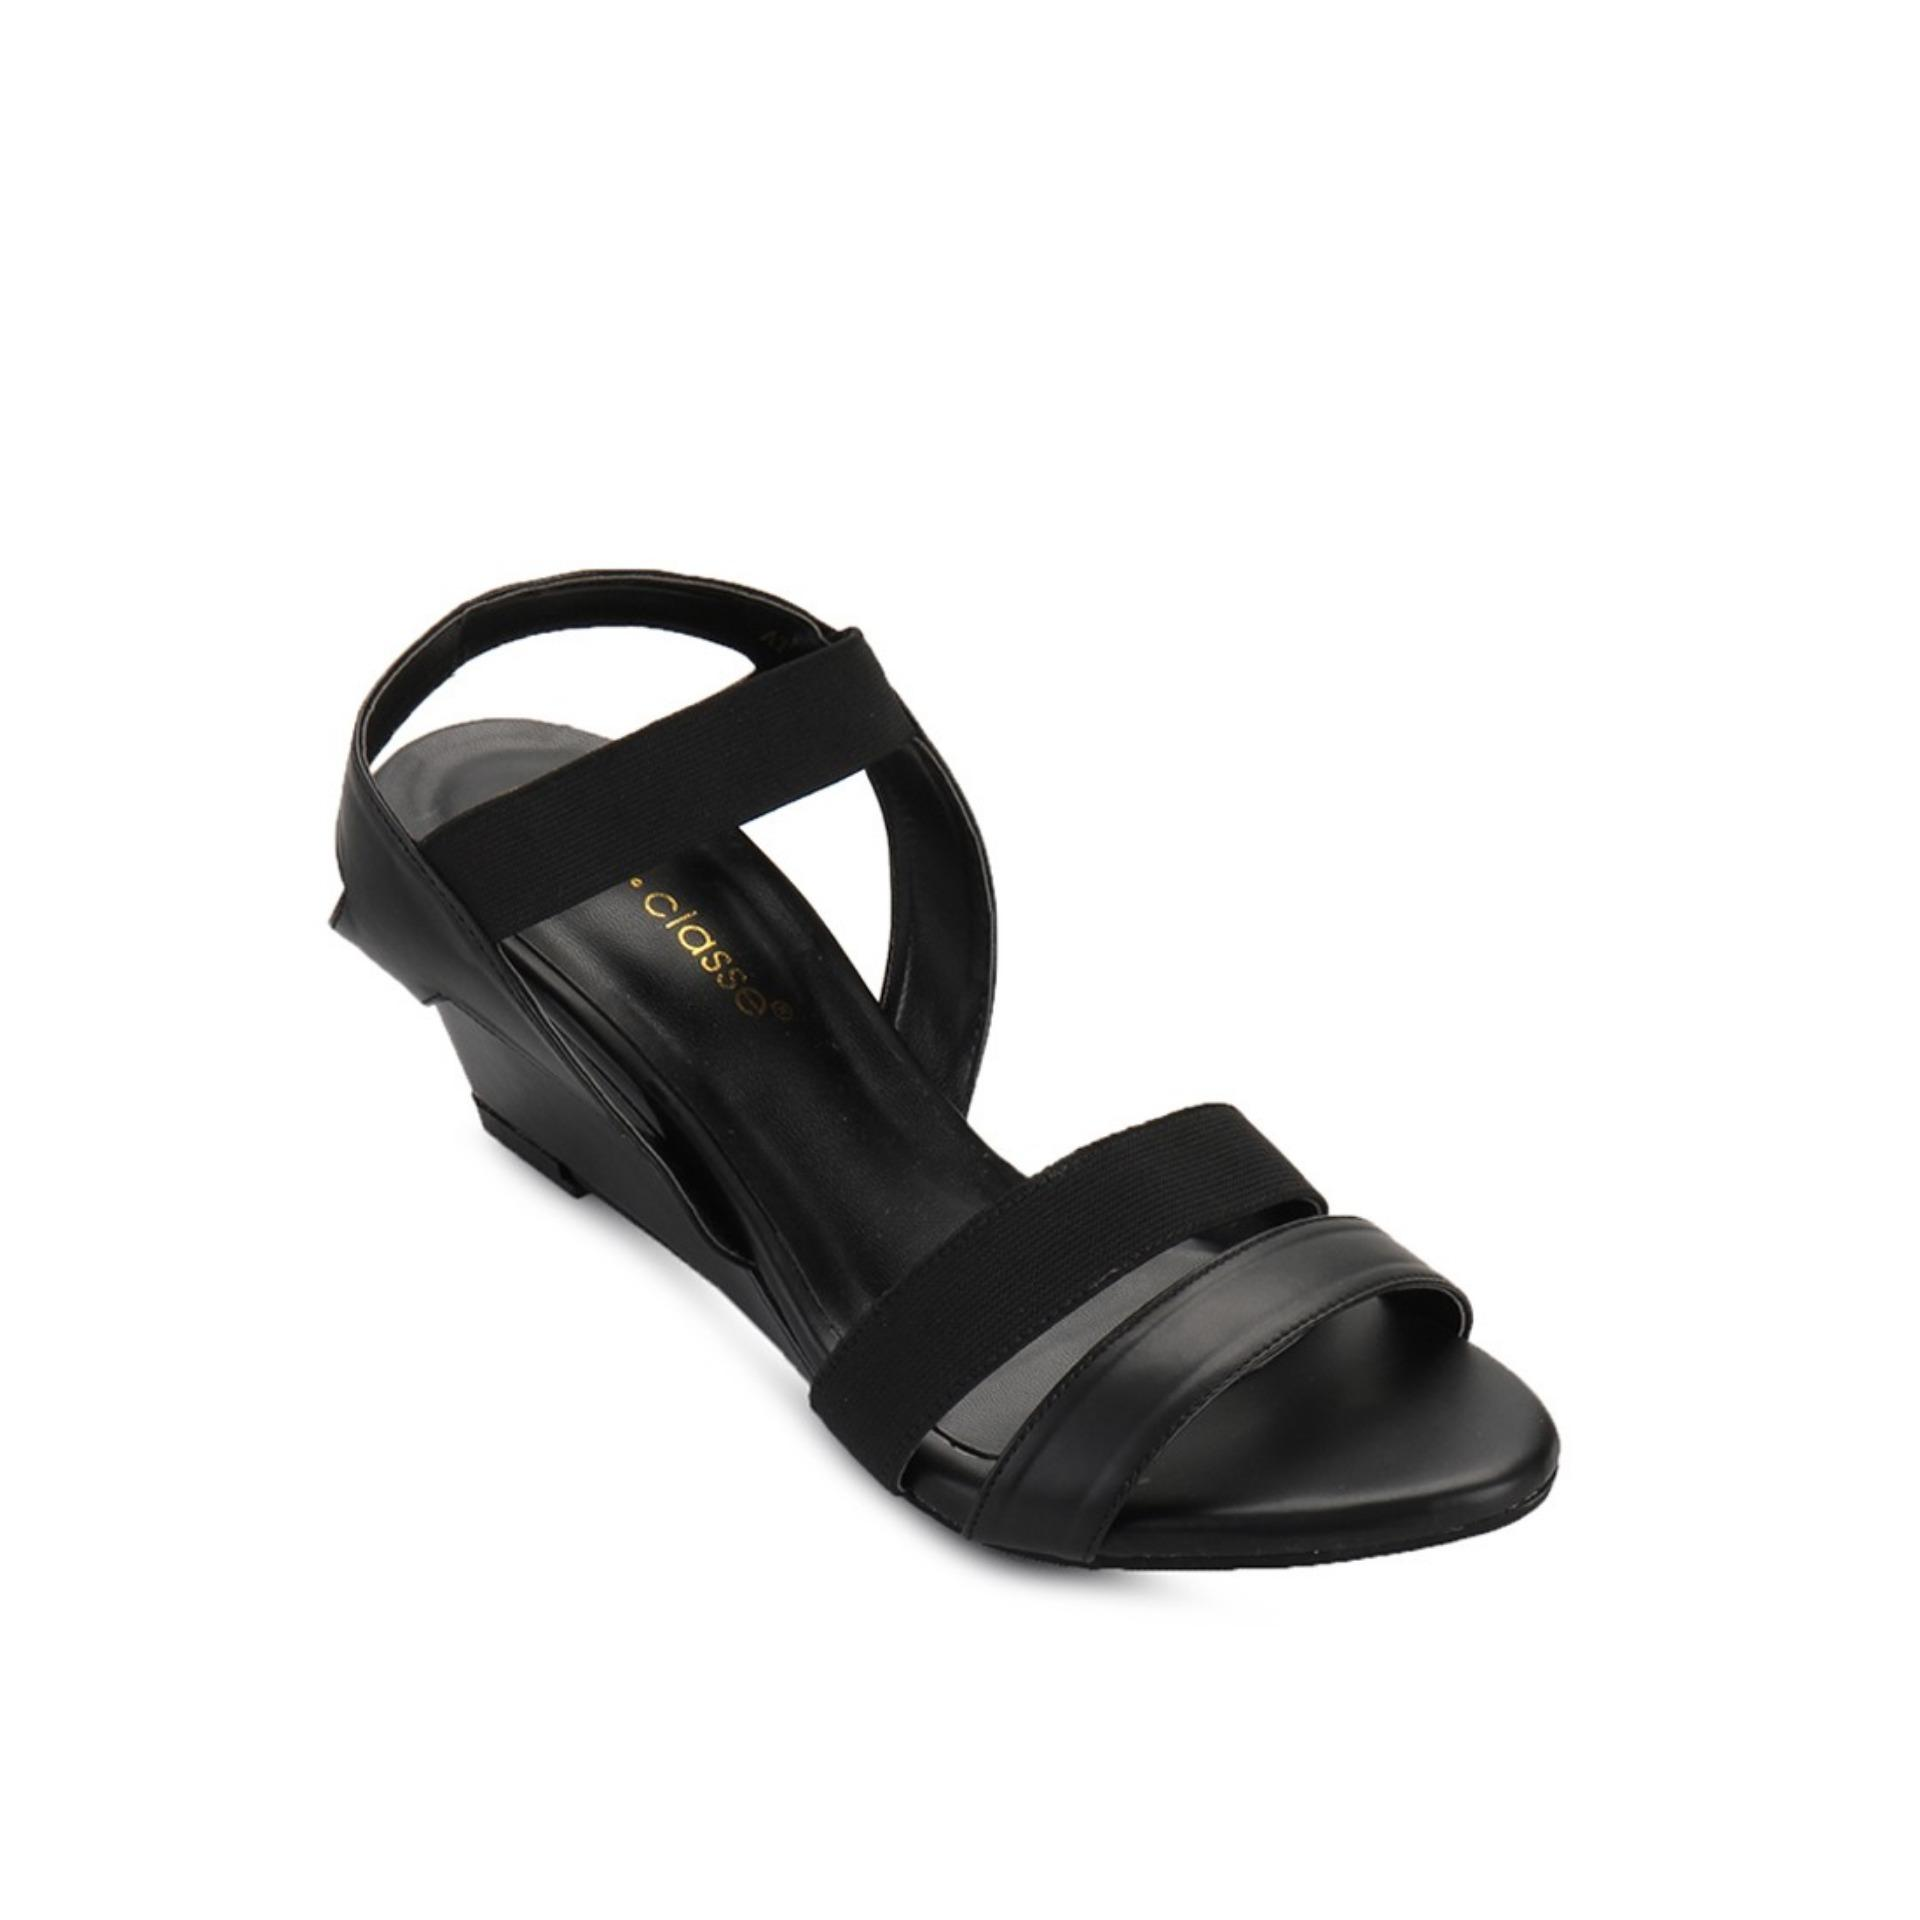 Review Tentang Prima Classe Slingback Sandals Black